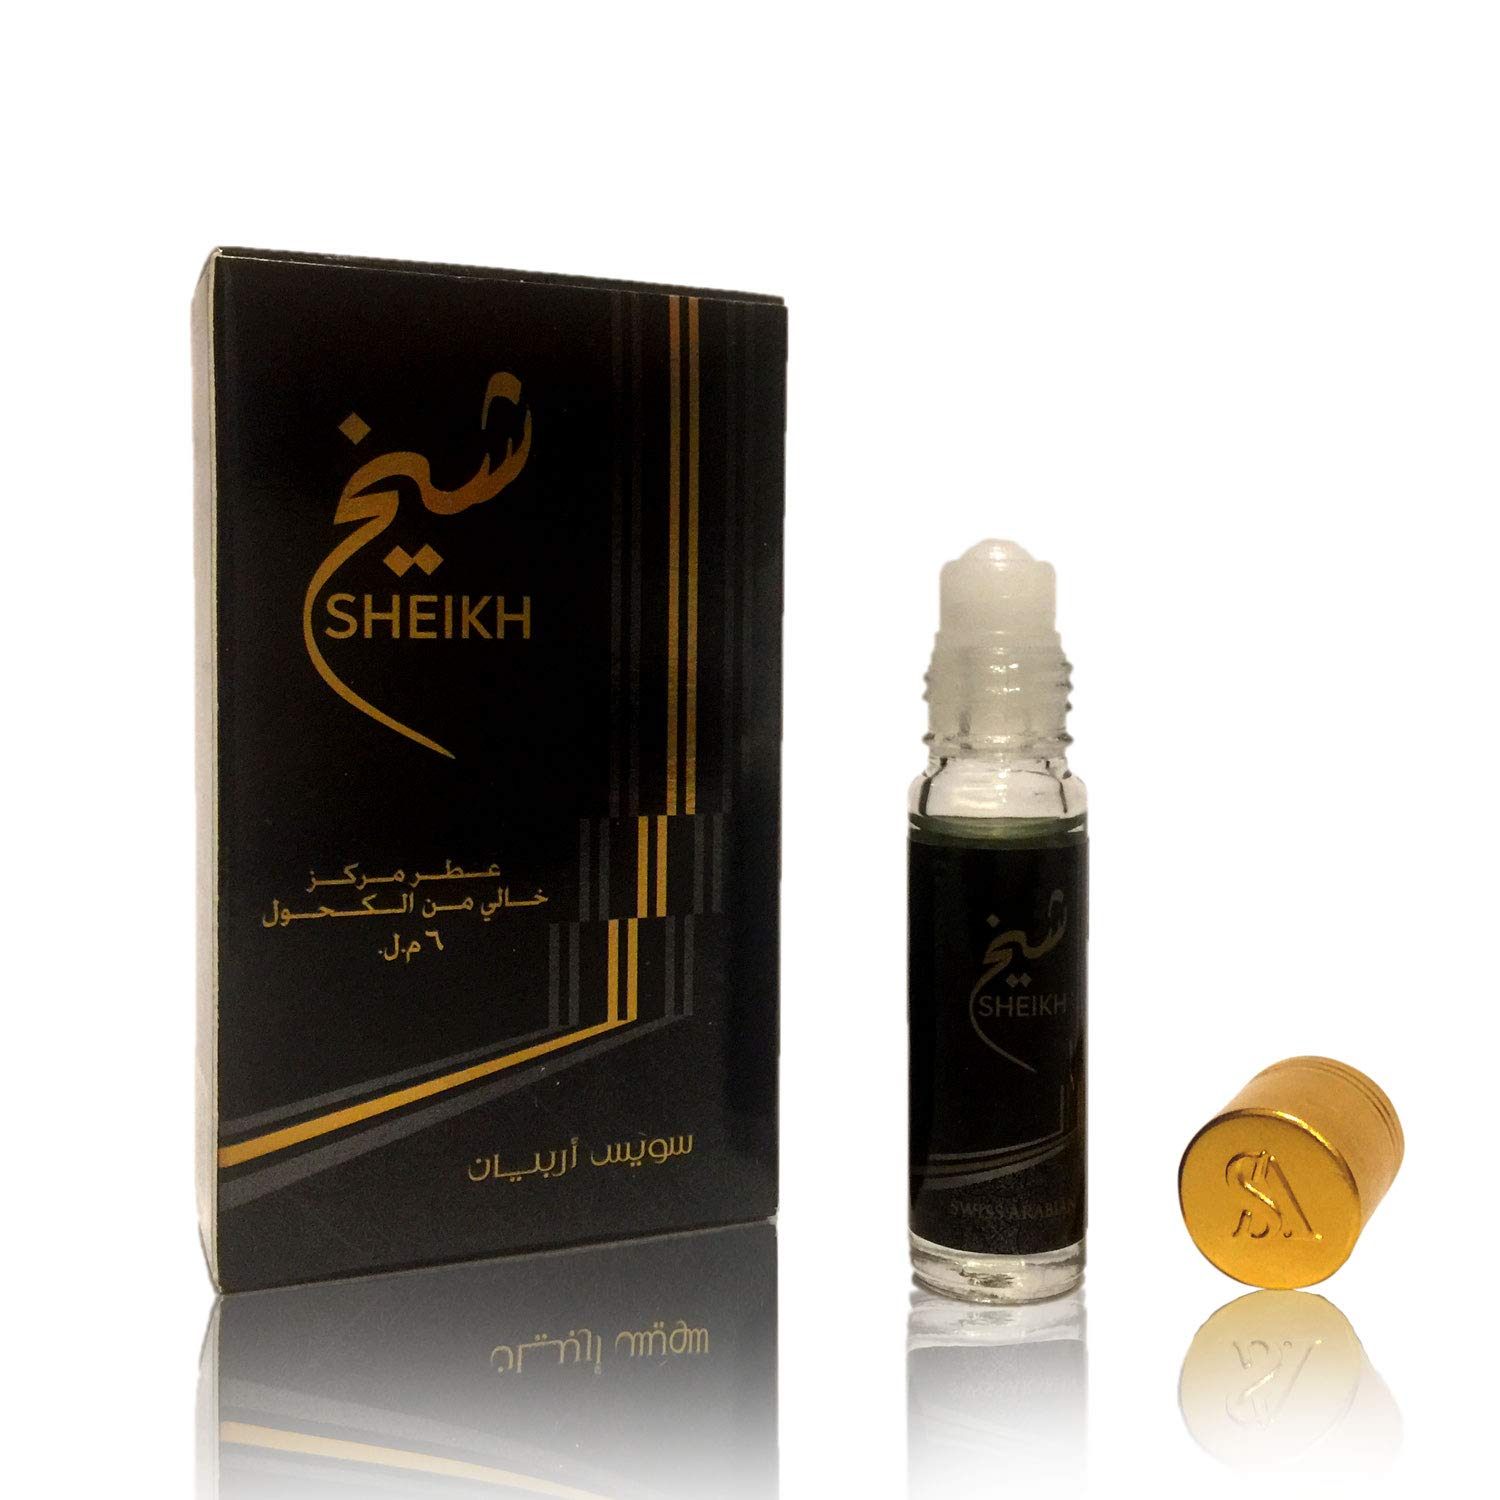 SHEIKH, Roll On Perfume Oil 6 mL (.2 oz) | Oriental Fragrance for Men and Women | Musk, Woody, Aquatic and Citrus Notes | Alcohol Free Attar, Vegan Parfum | by Oudh Artisan Swiss Arabian